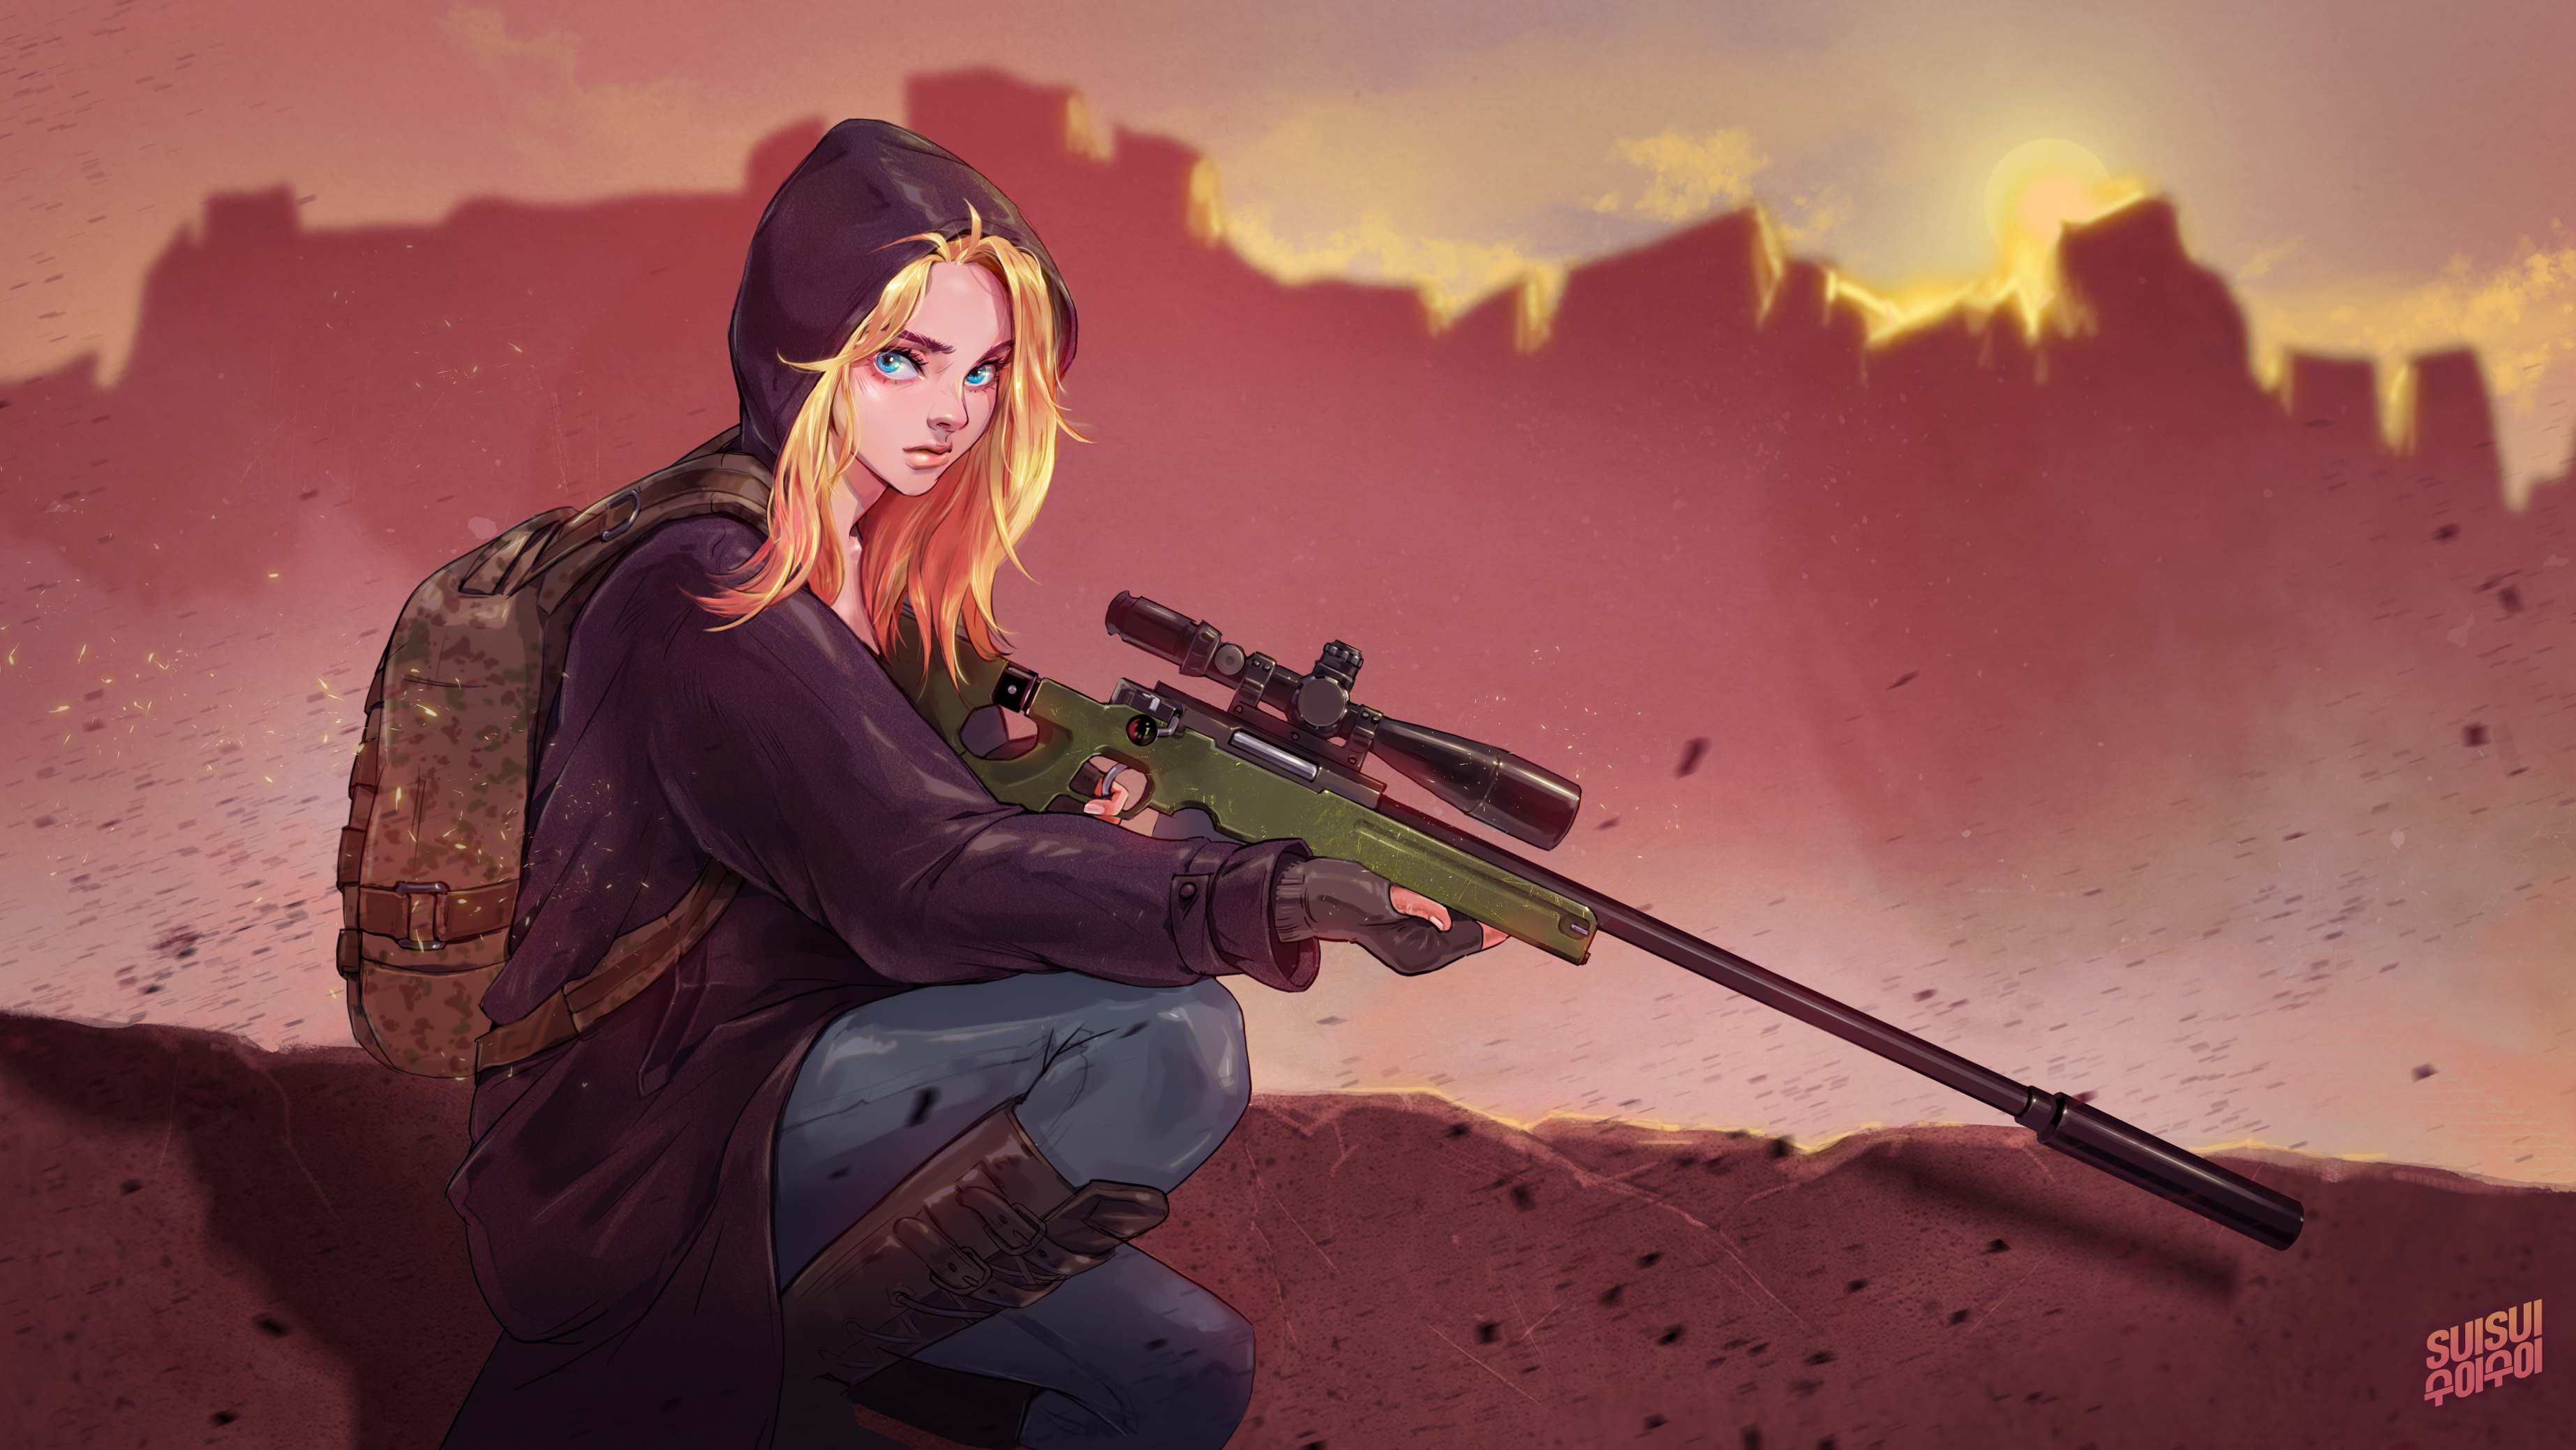 Pubg Wallpaper Engine Illustration By Hey Suisui